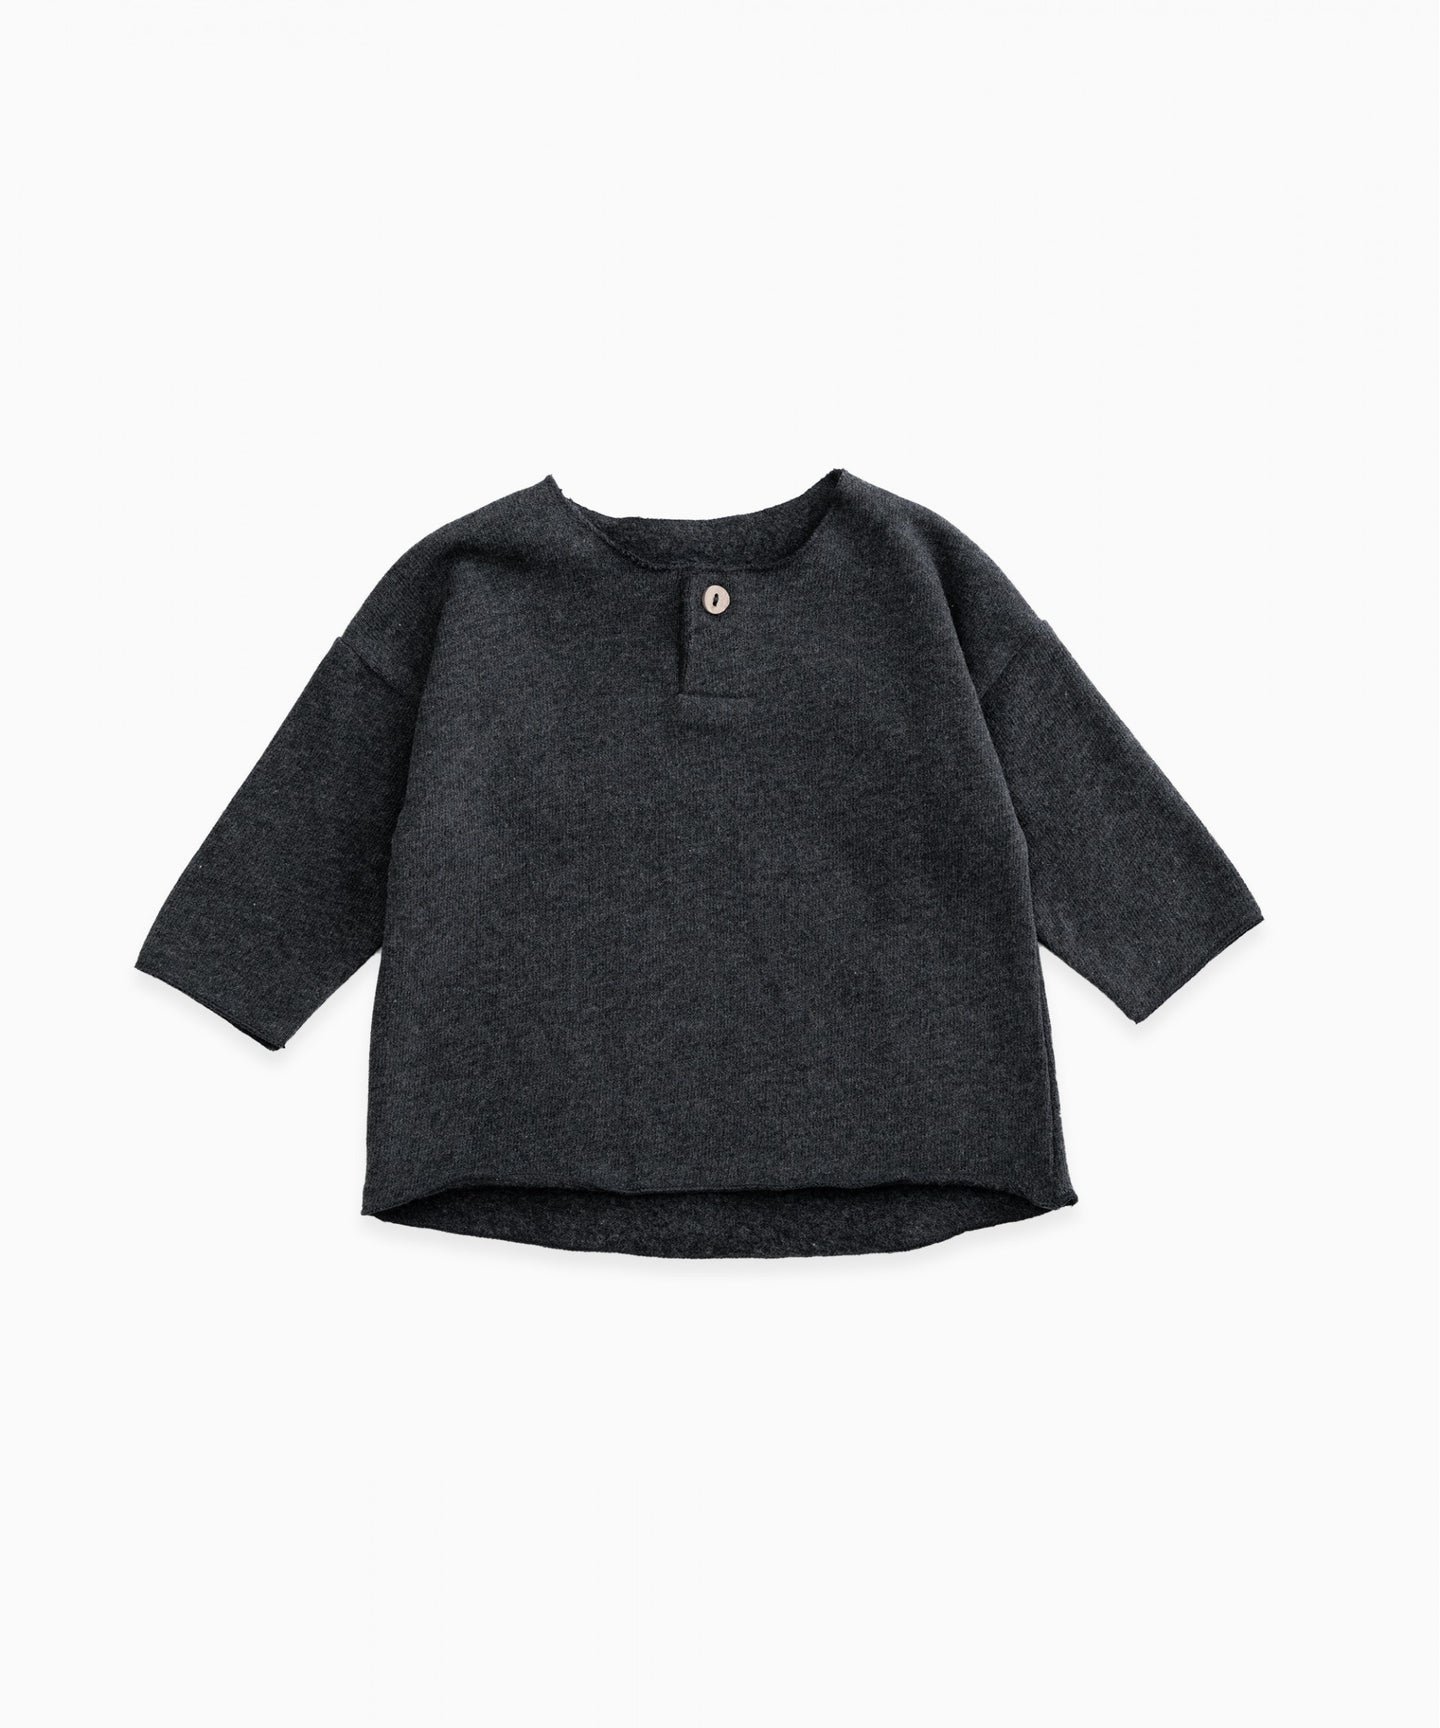 Play Up - Organic Cotton Top W/ Wood Button - Rasp